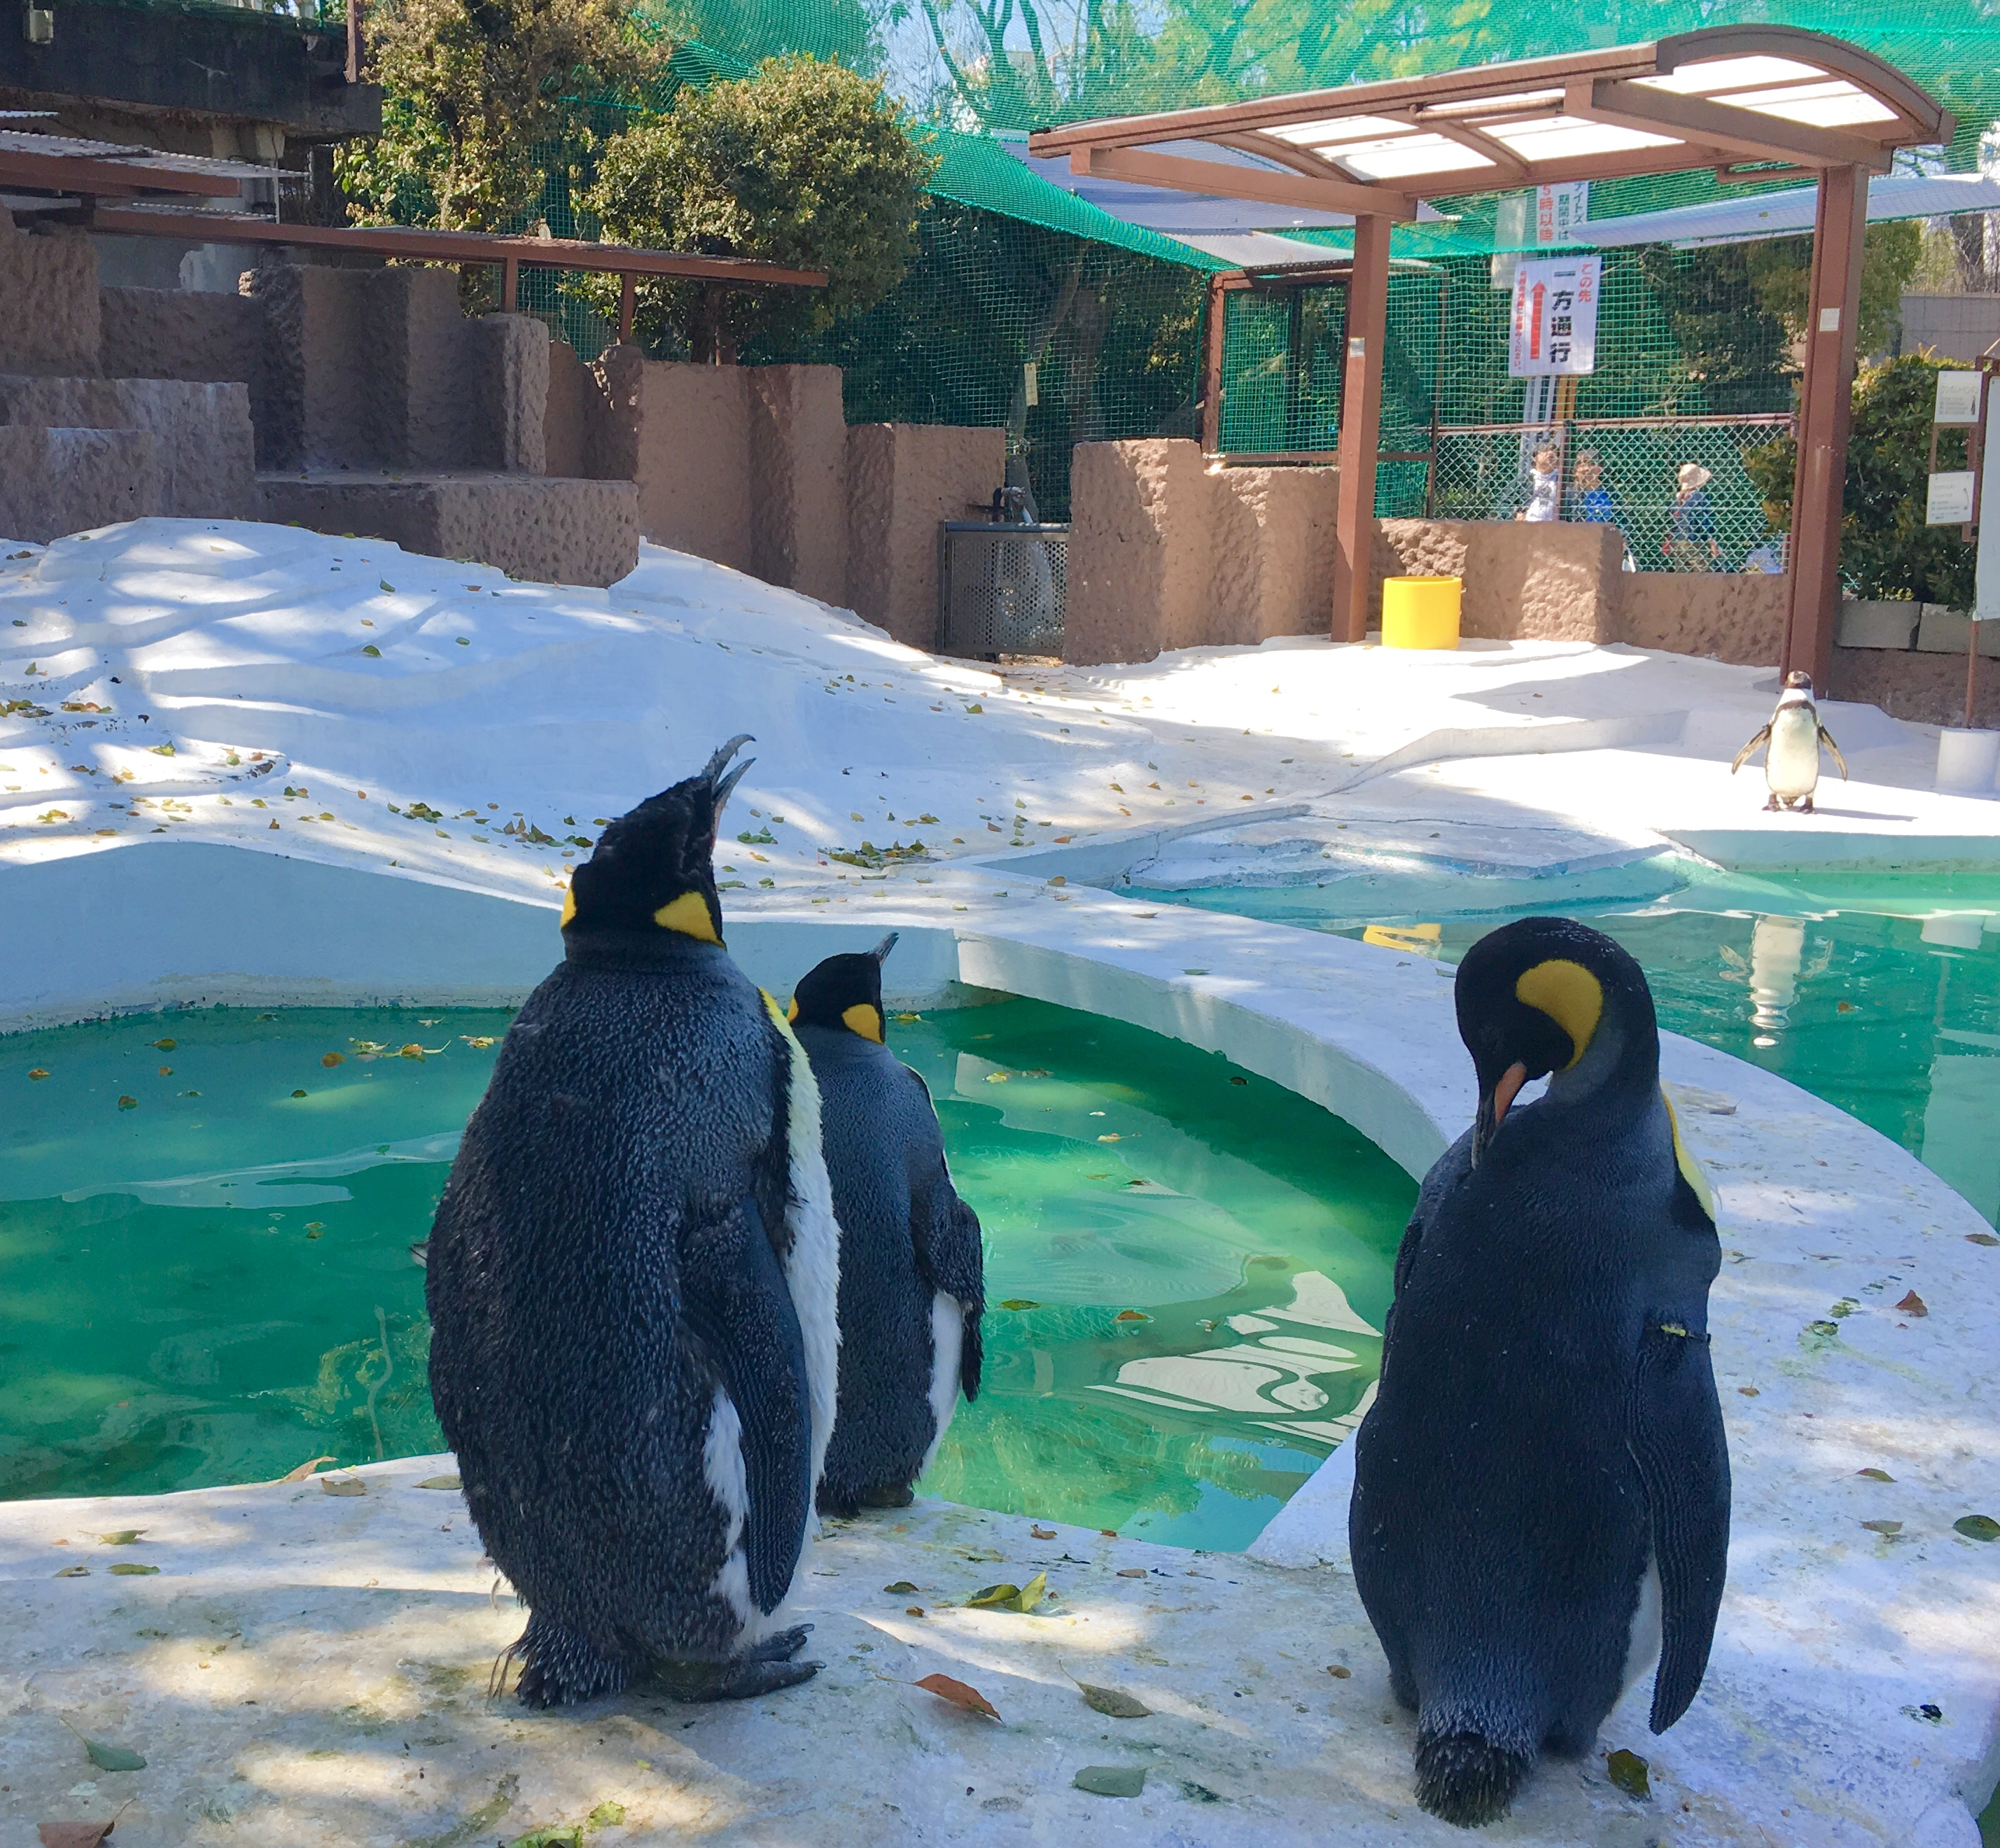 three emperor penguins sitting in their enclosure at Tennoji Zoo